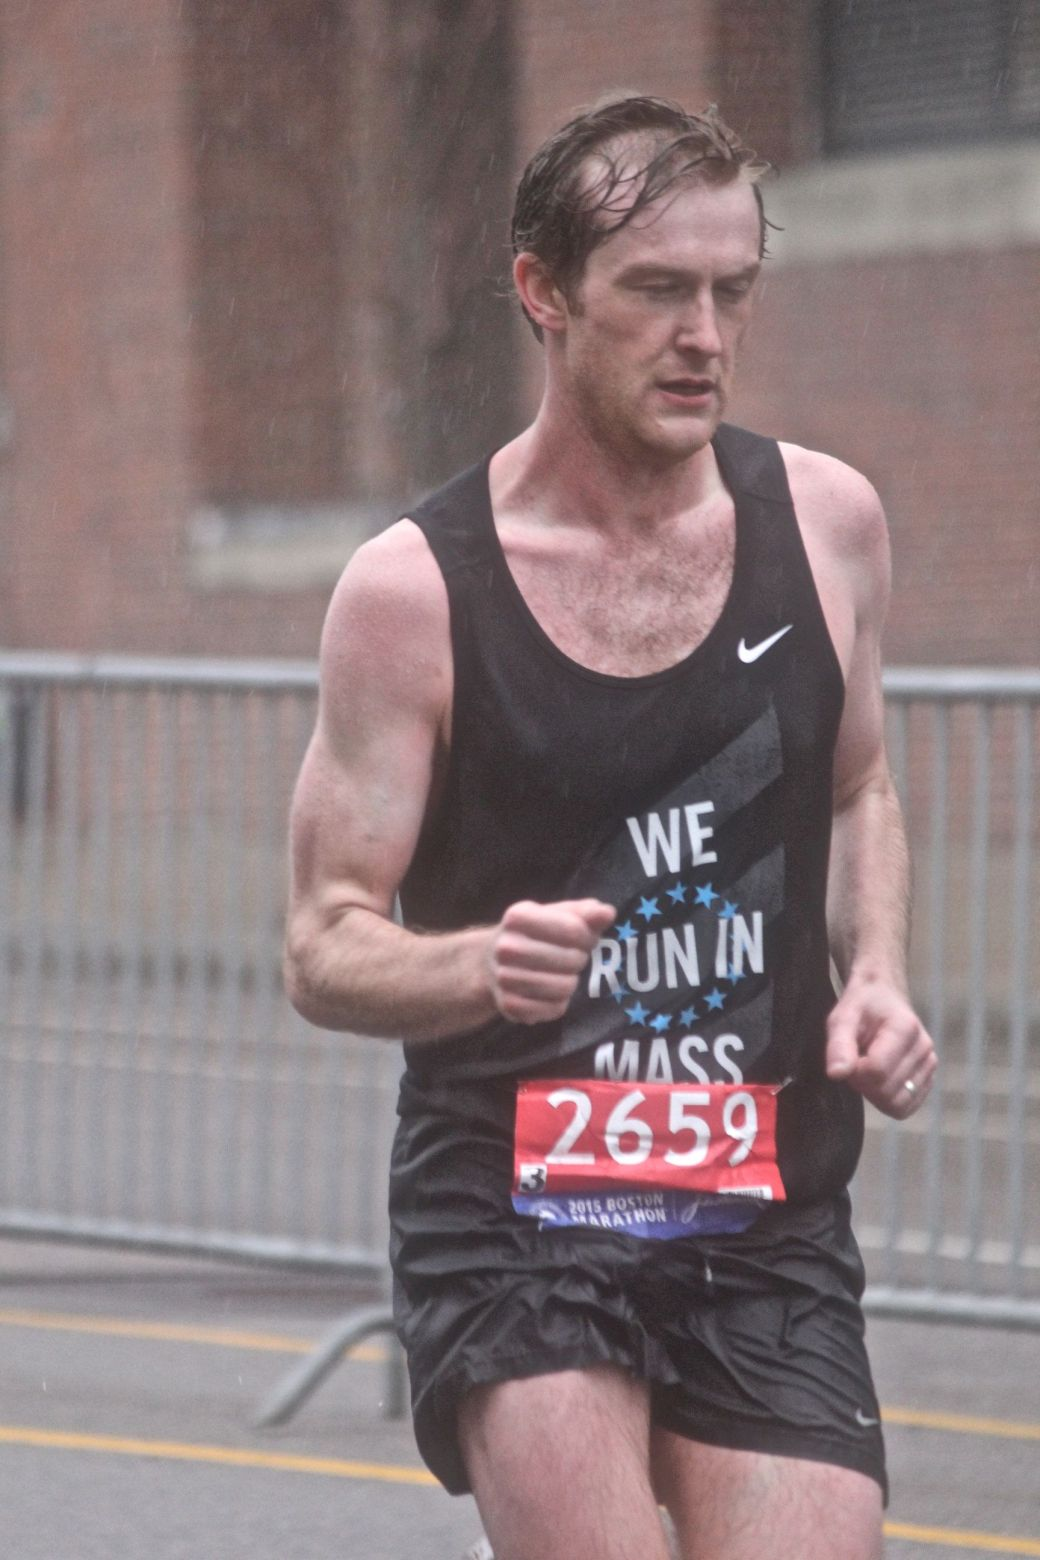 boston marathon april 20 2015 racer number 2659